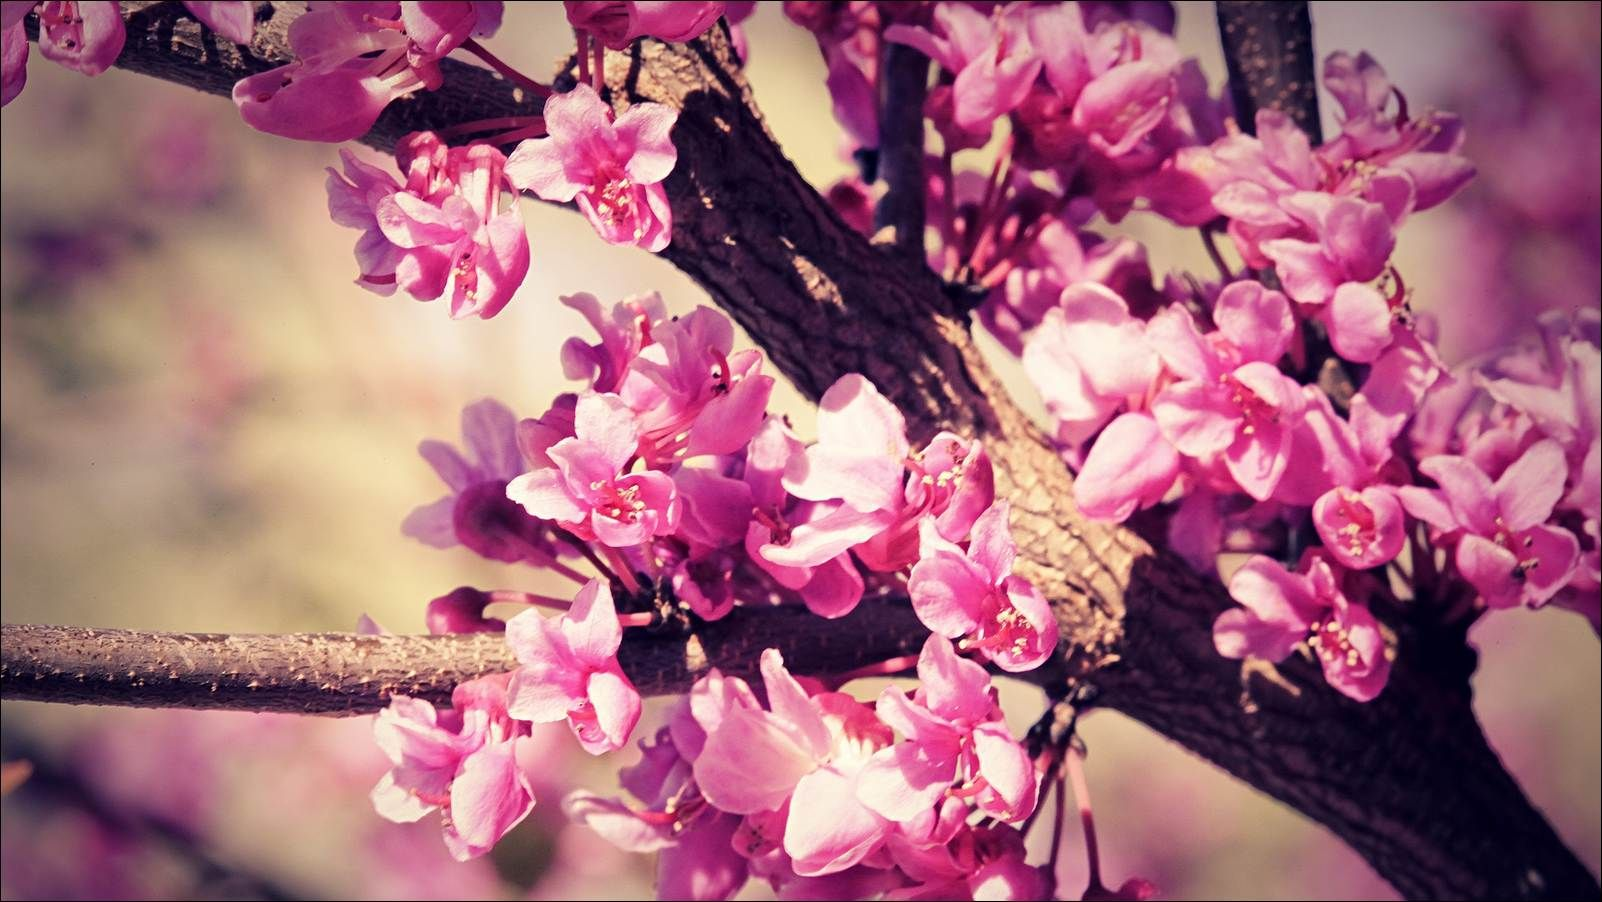 Wallpapers Tumblr Flowers Cosas Interesantes Pinterest Spring